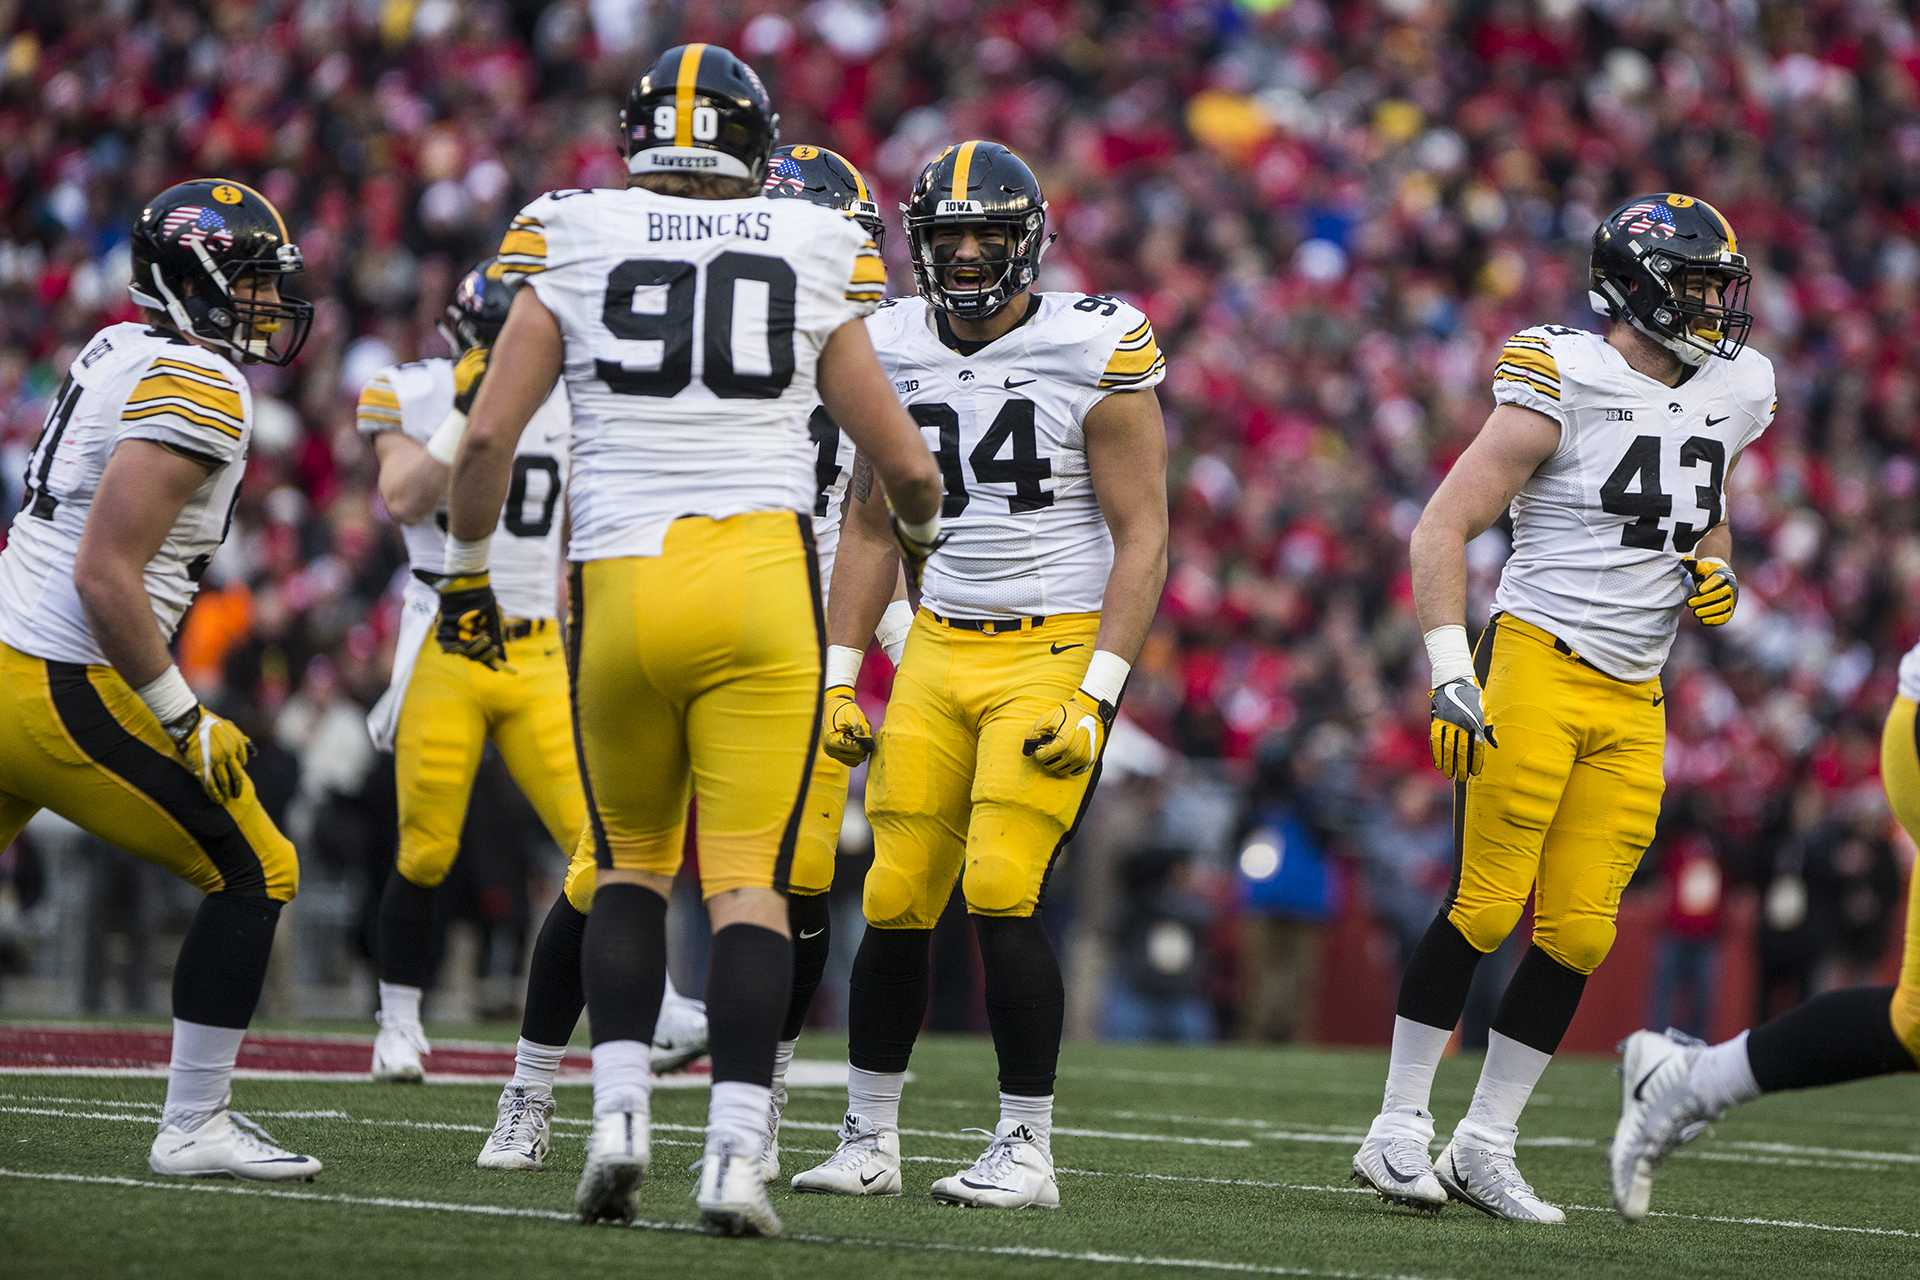 Iowa defensive end A.J. Epenesa (94) celebrates a sack during the game between Iowa and Wisconsin at Camp Randall Stadium on Saturday, Nov. 11, 2017. The Hawkeyes fell to the Badgers 38-14. (Ben Smith/The Daily Iowan)